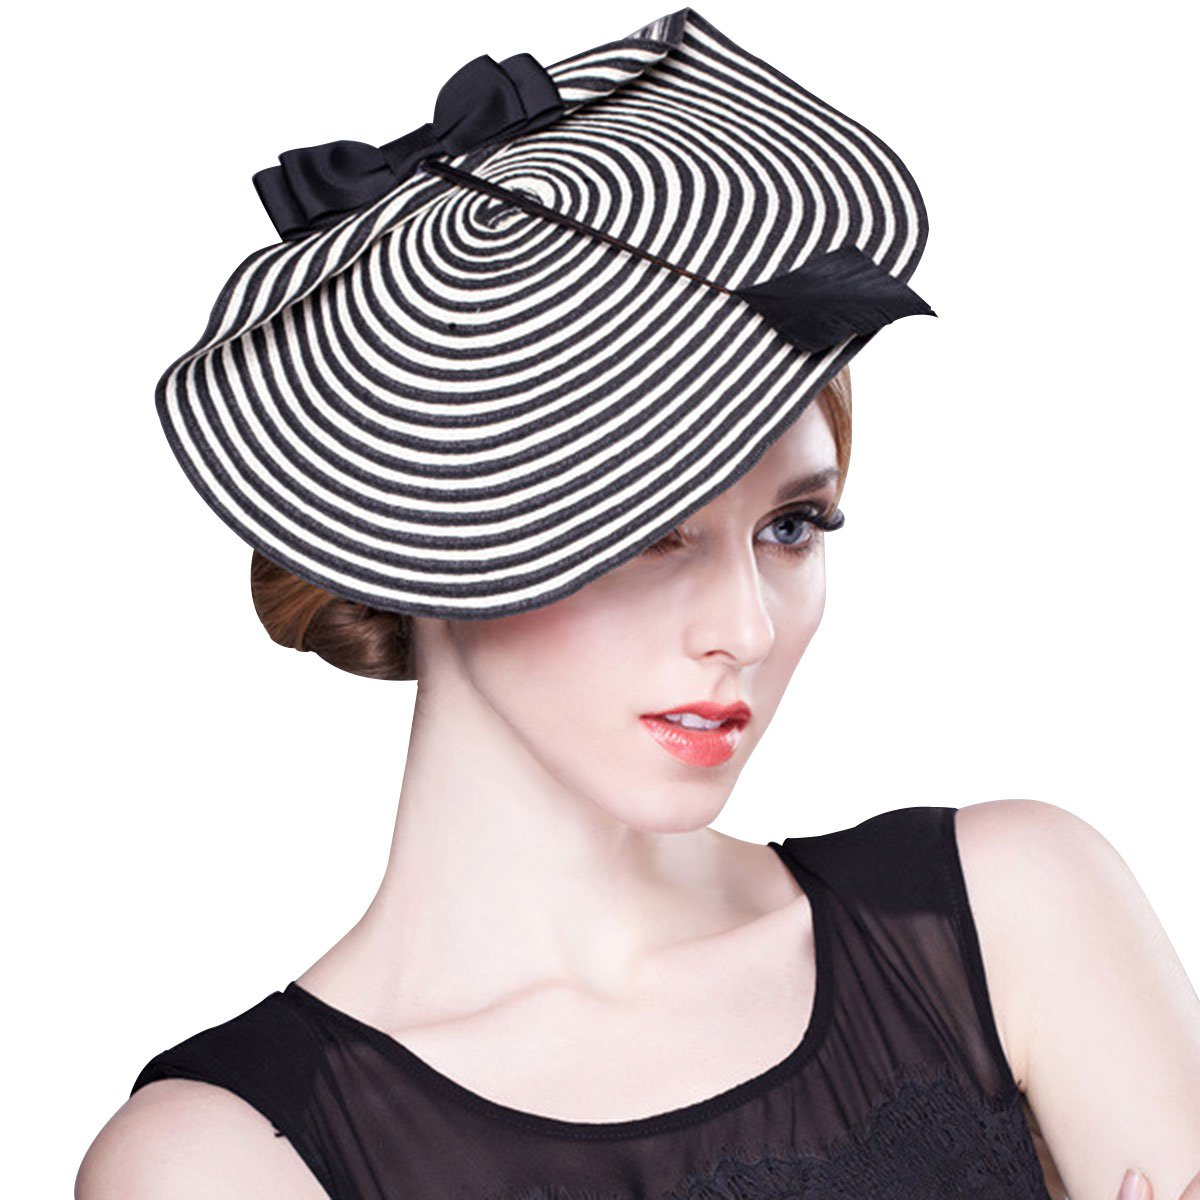 dfce3e4a3bc Womens Chic Straw Arrow Fascinator Cocktail Saucer Hat Royal Ascot Wedding  A003 (Black and White)(Size  One Size)  Amazon.co.uk  Clothing